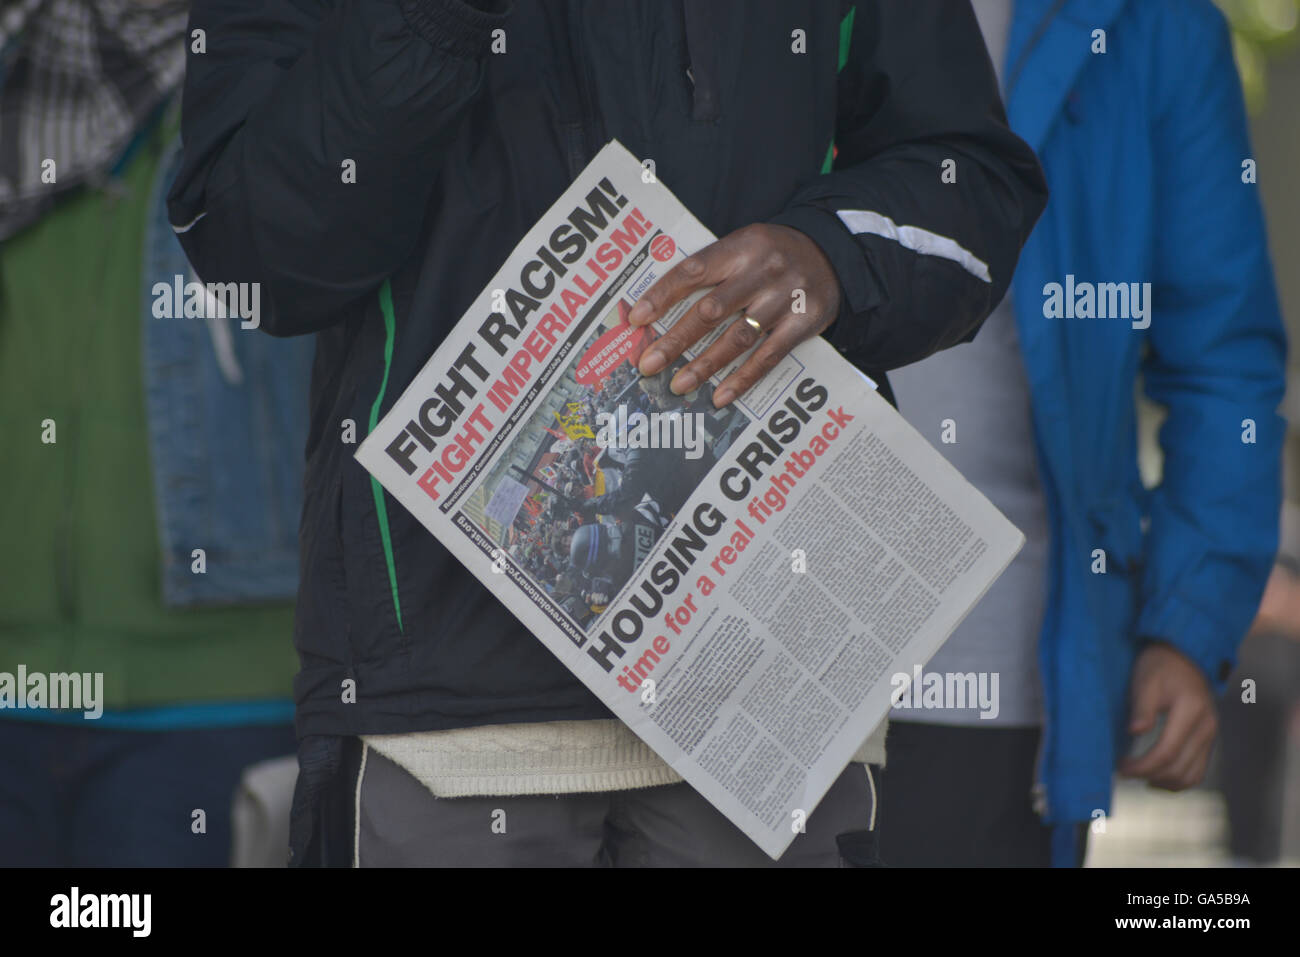 Manchester, UK. 02nd July, 2016. A person holding on to a copy of the Fight Racism-Fight Imperialism party newspaper - Stock Image